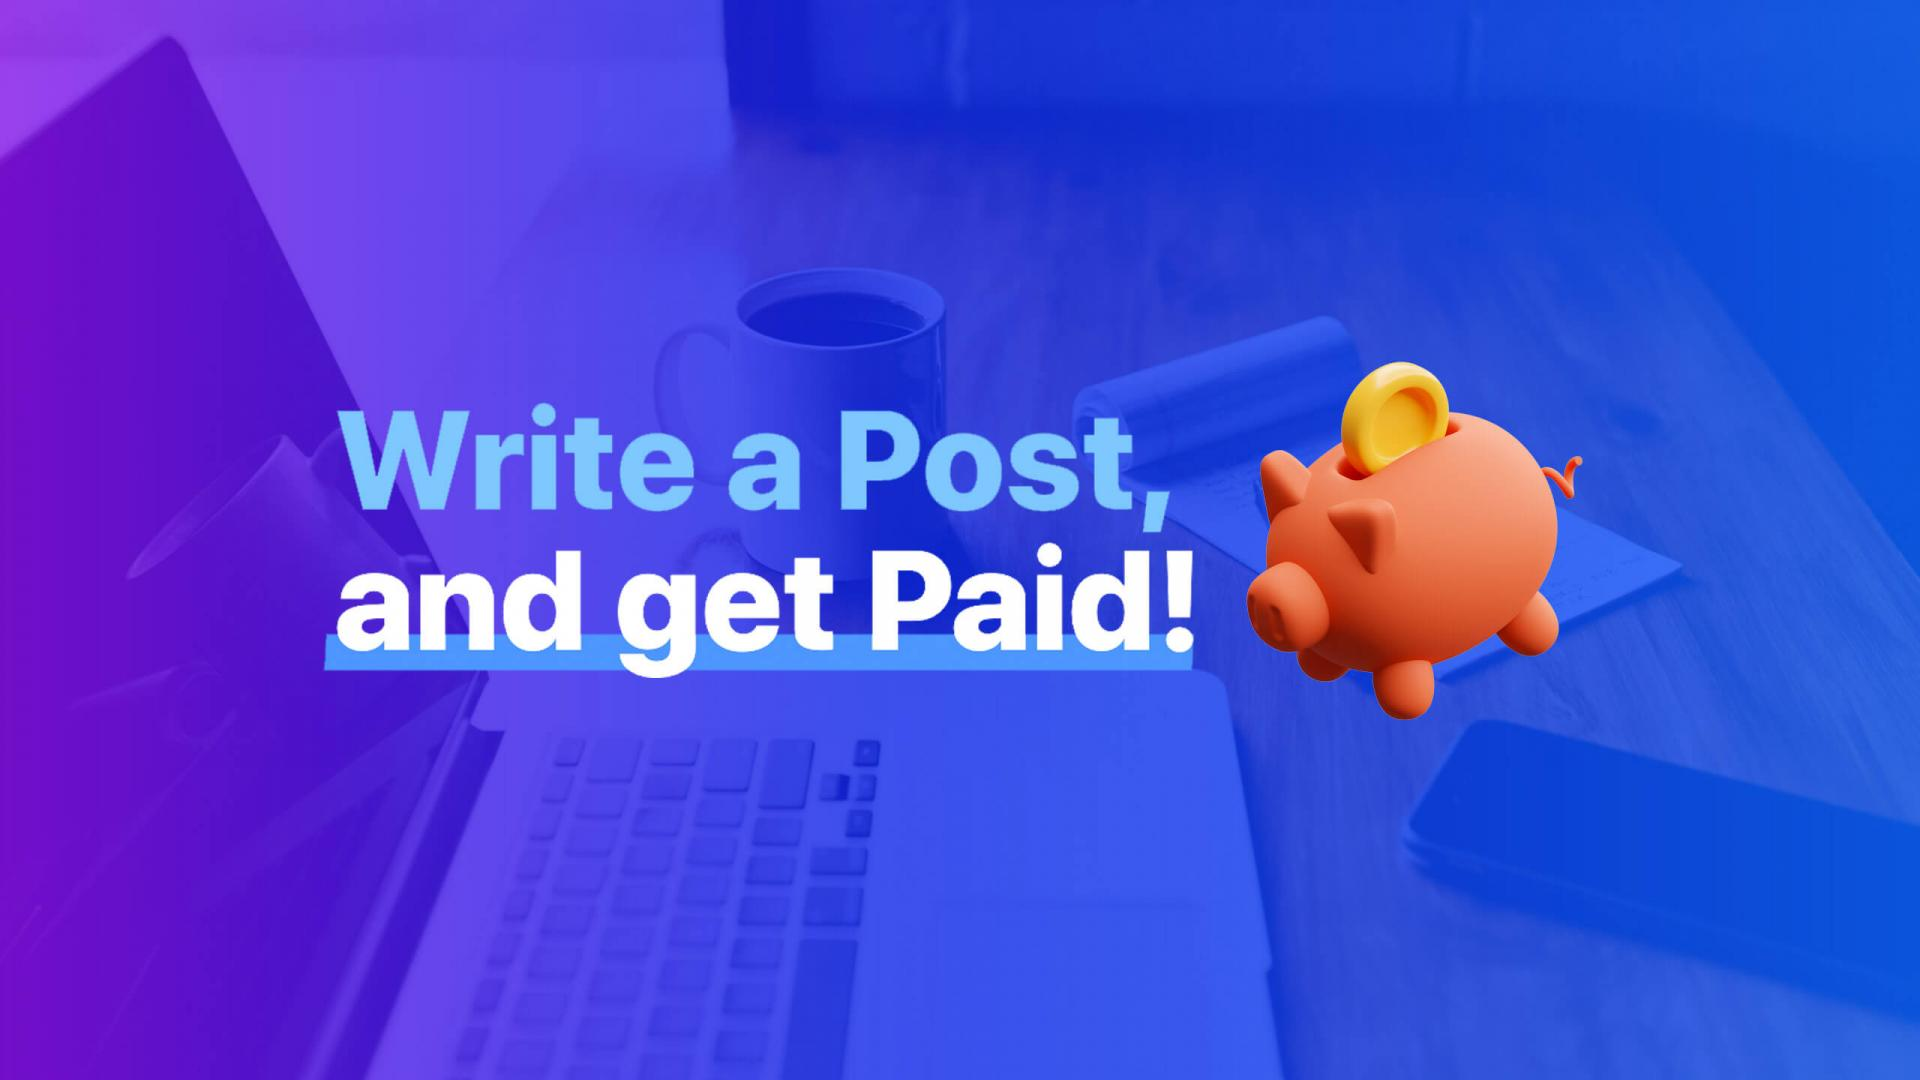 Write a Post, Get Paid